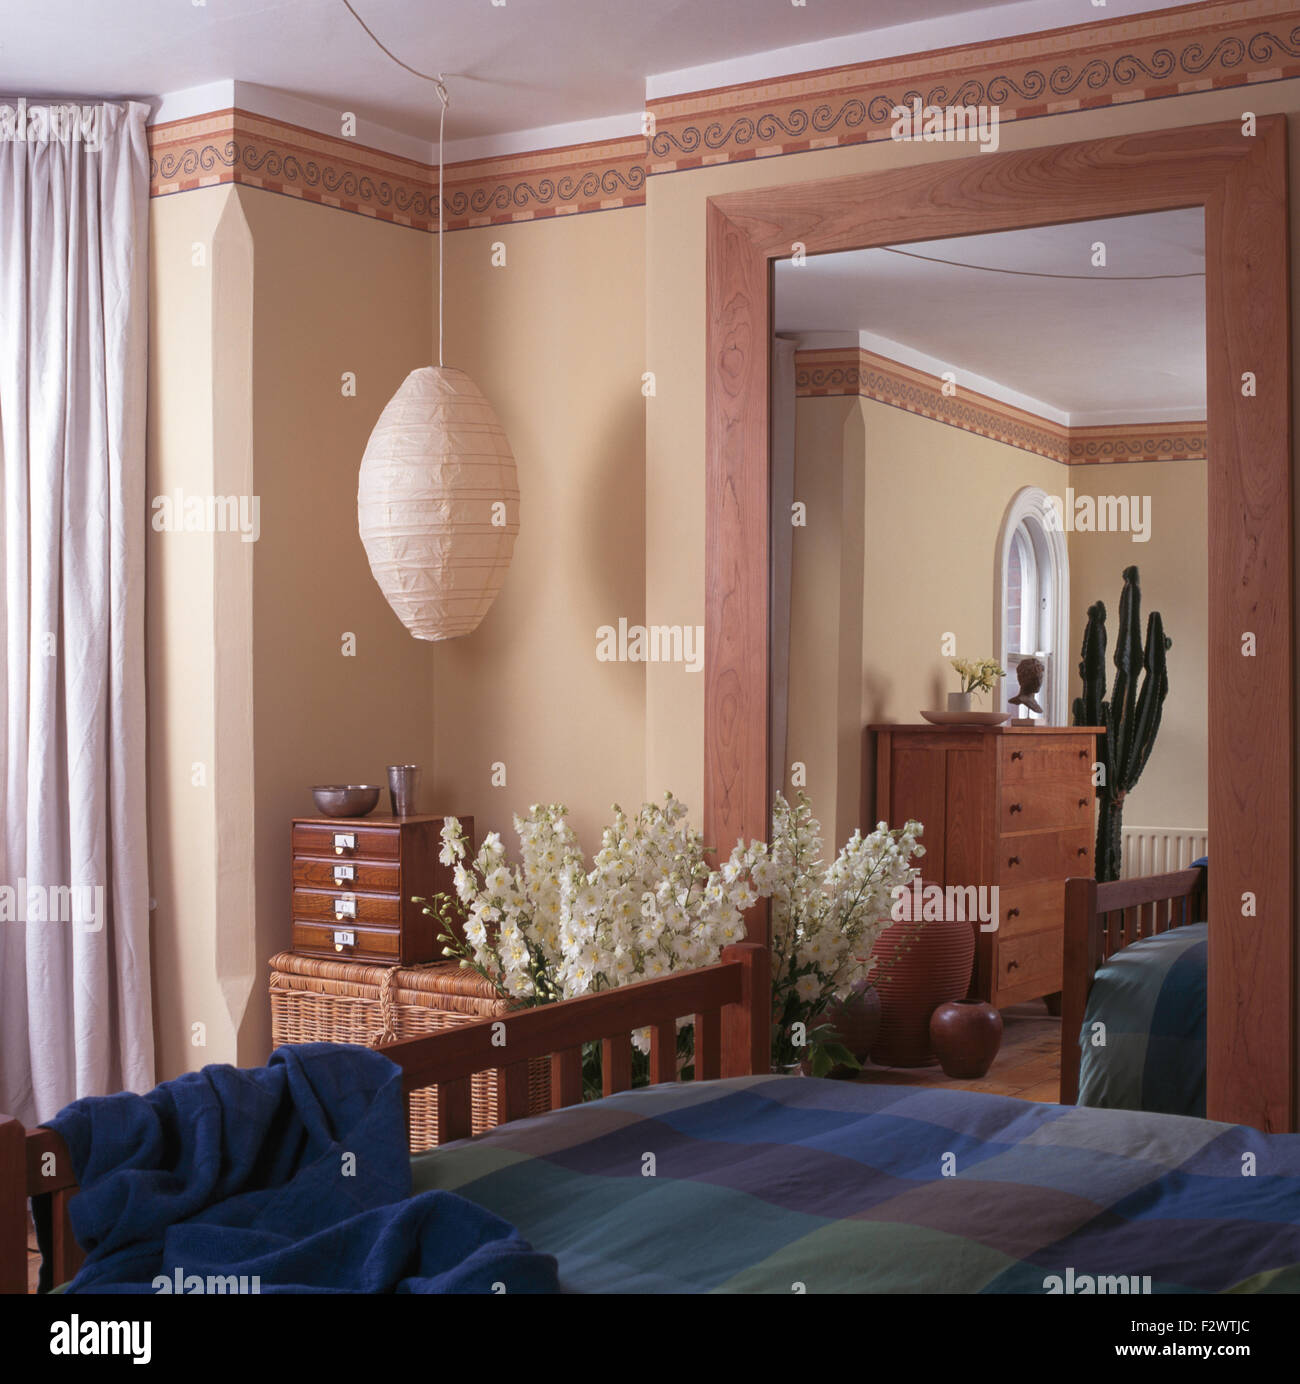 Lozenge shaped paper ceiling light in nineties bedroom with large rectangular mirror and wallpaper border - Stock Image